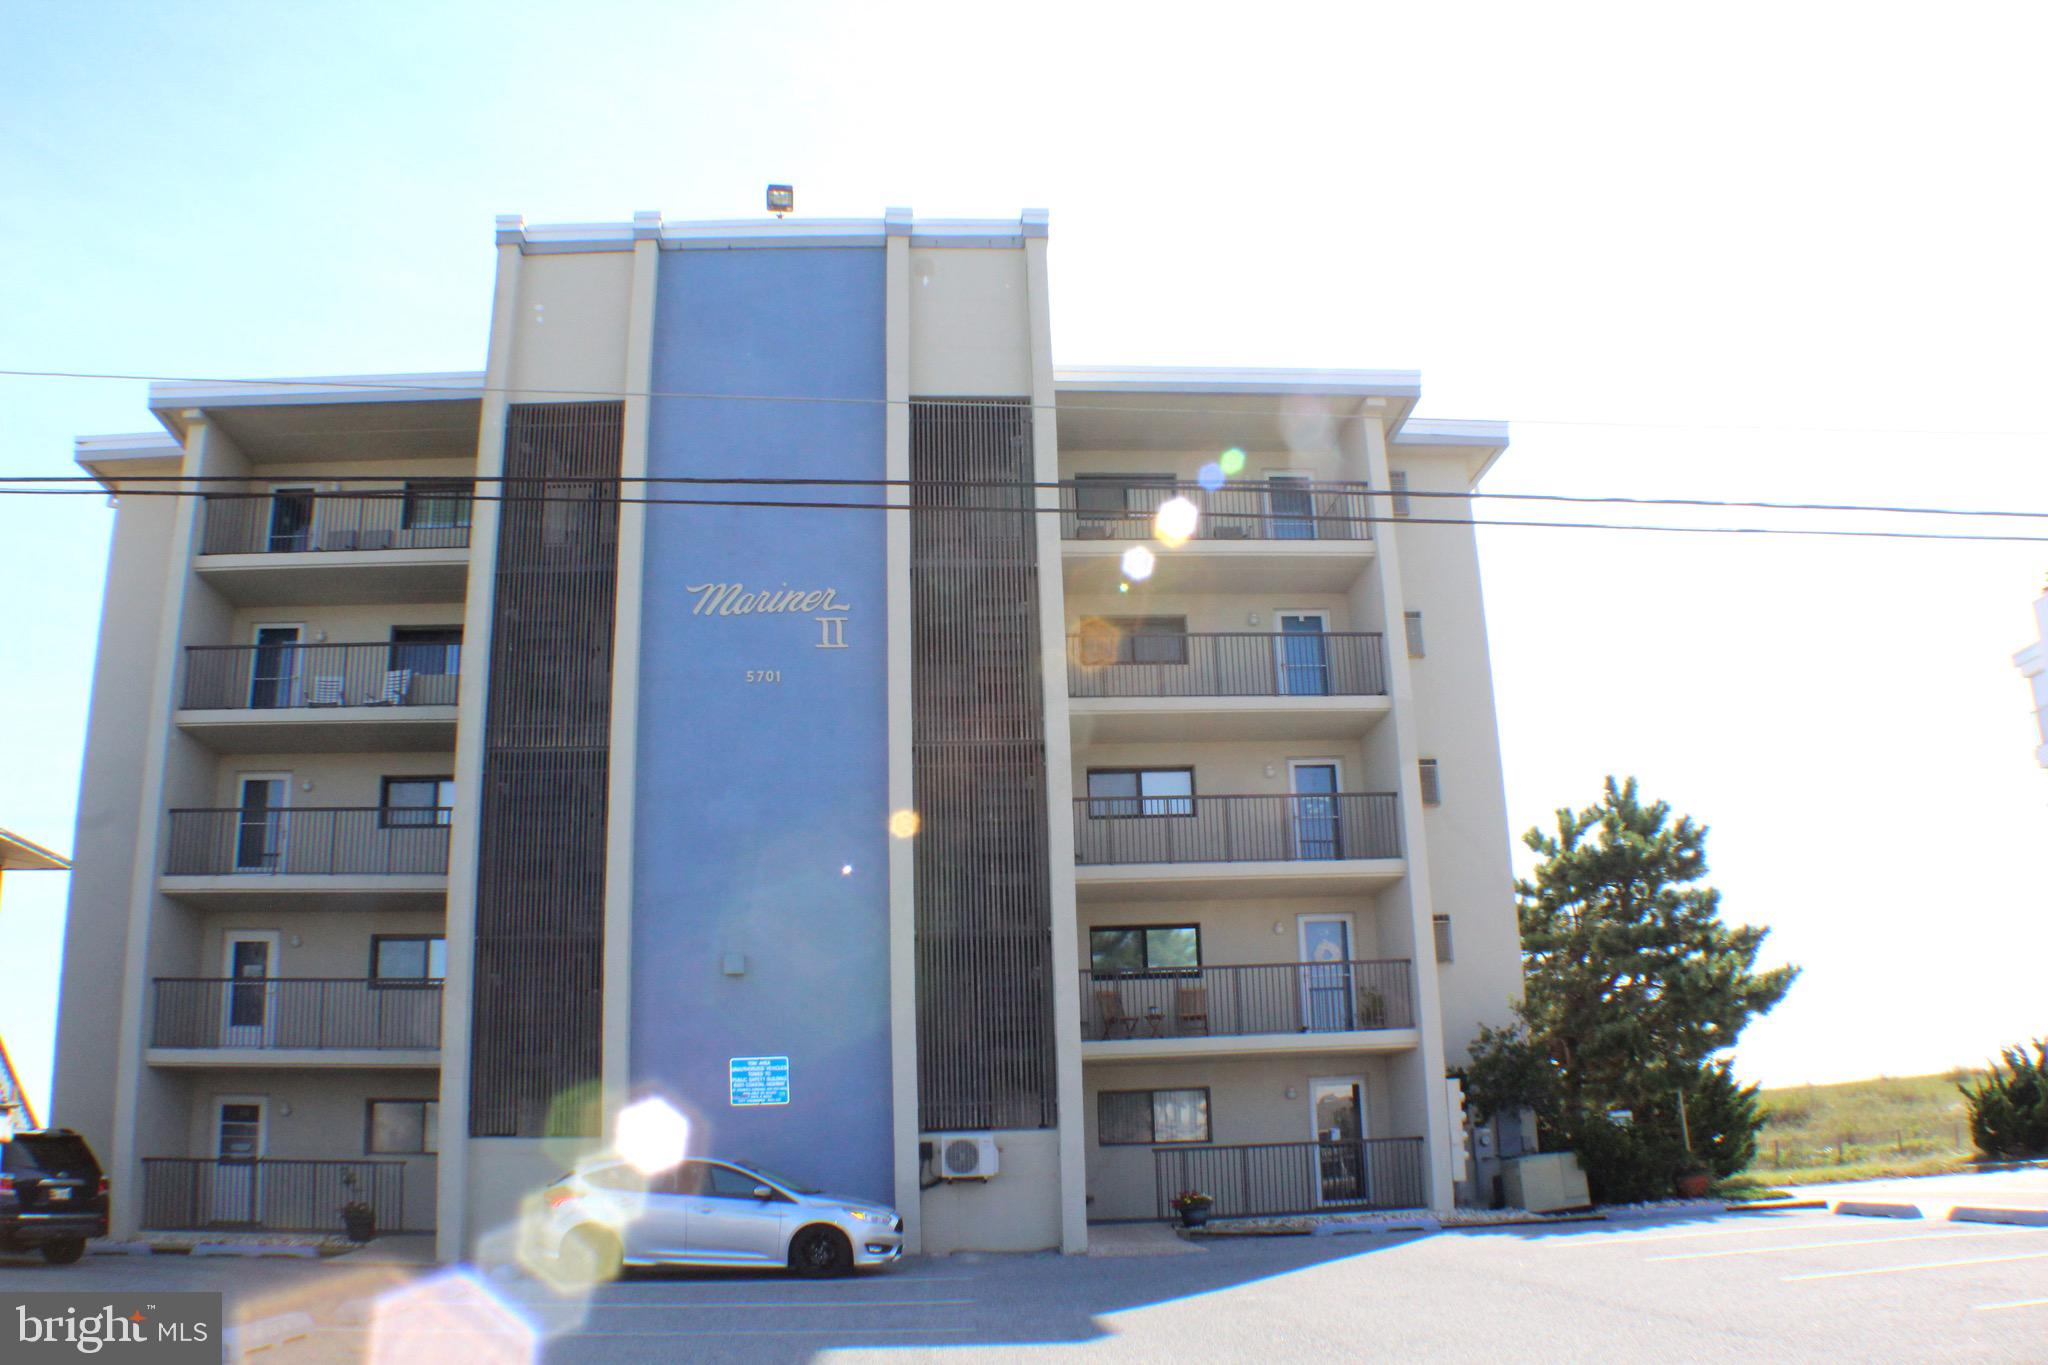 Completely remodeled in 2019,  2 bedroom, 2 bathroom condo with Direct ocean views. Views from Primary bedroom as well as living room and  private balcony. New appliances, new flooring, new hurricane shutters in 2019. Mid-Town location with elevator.